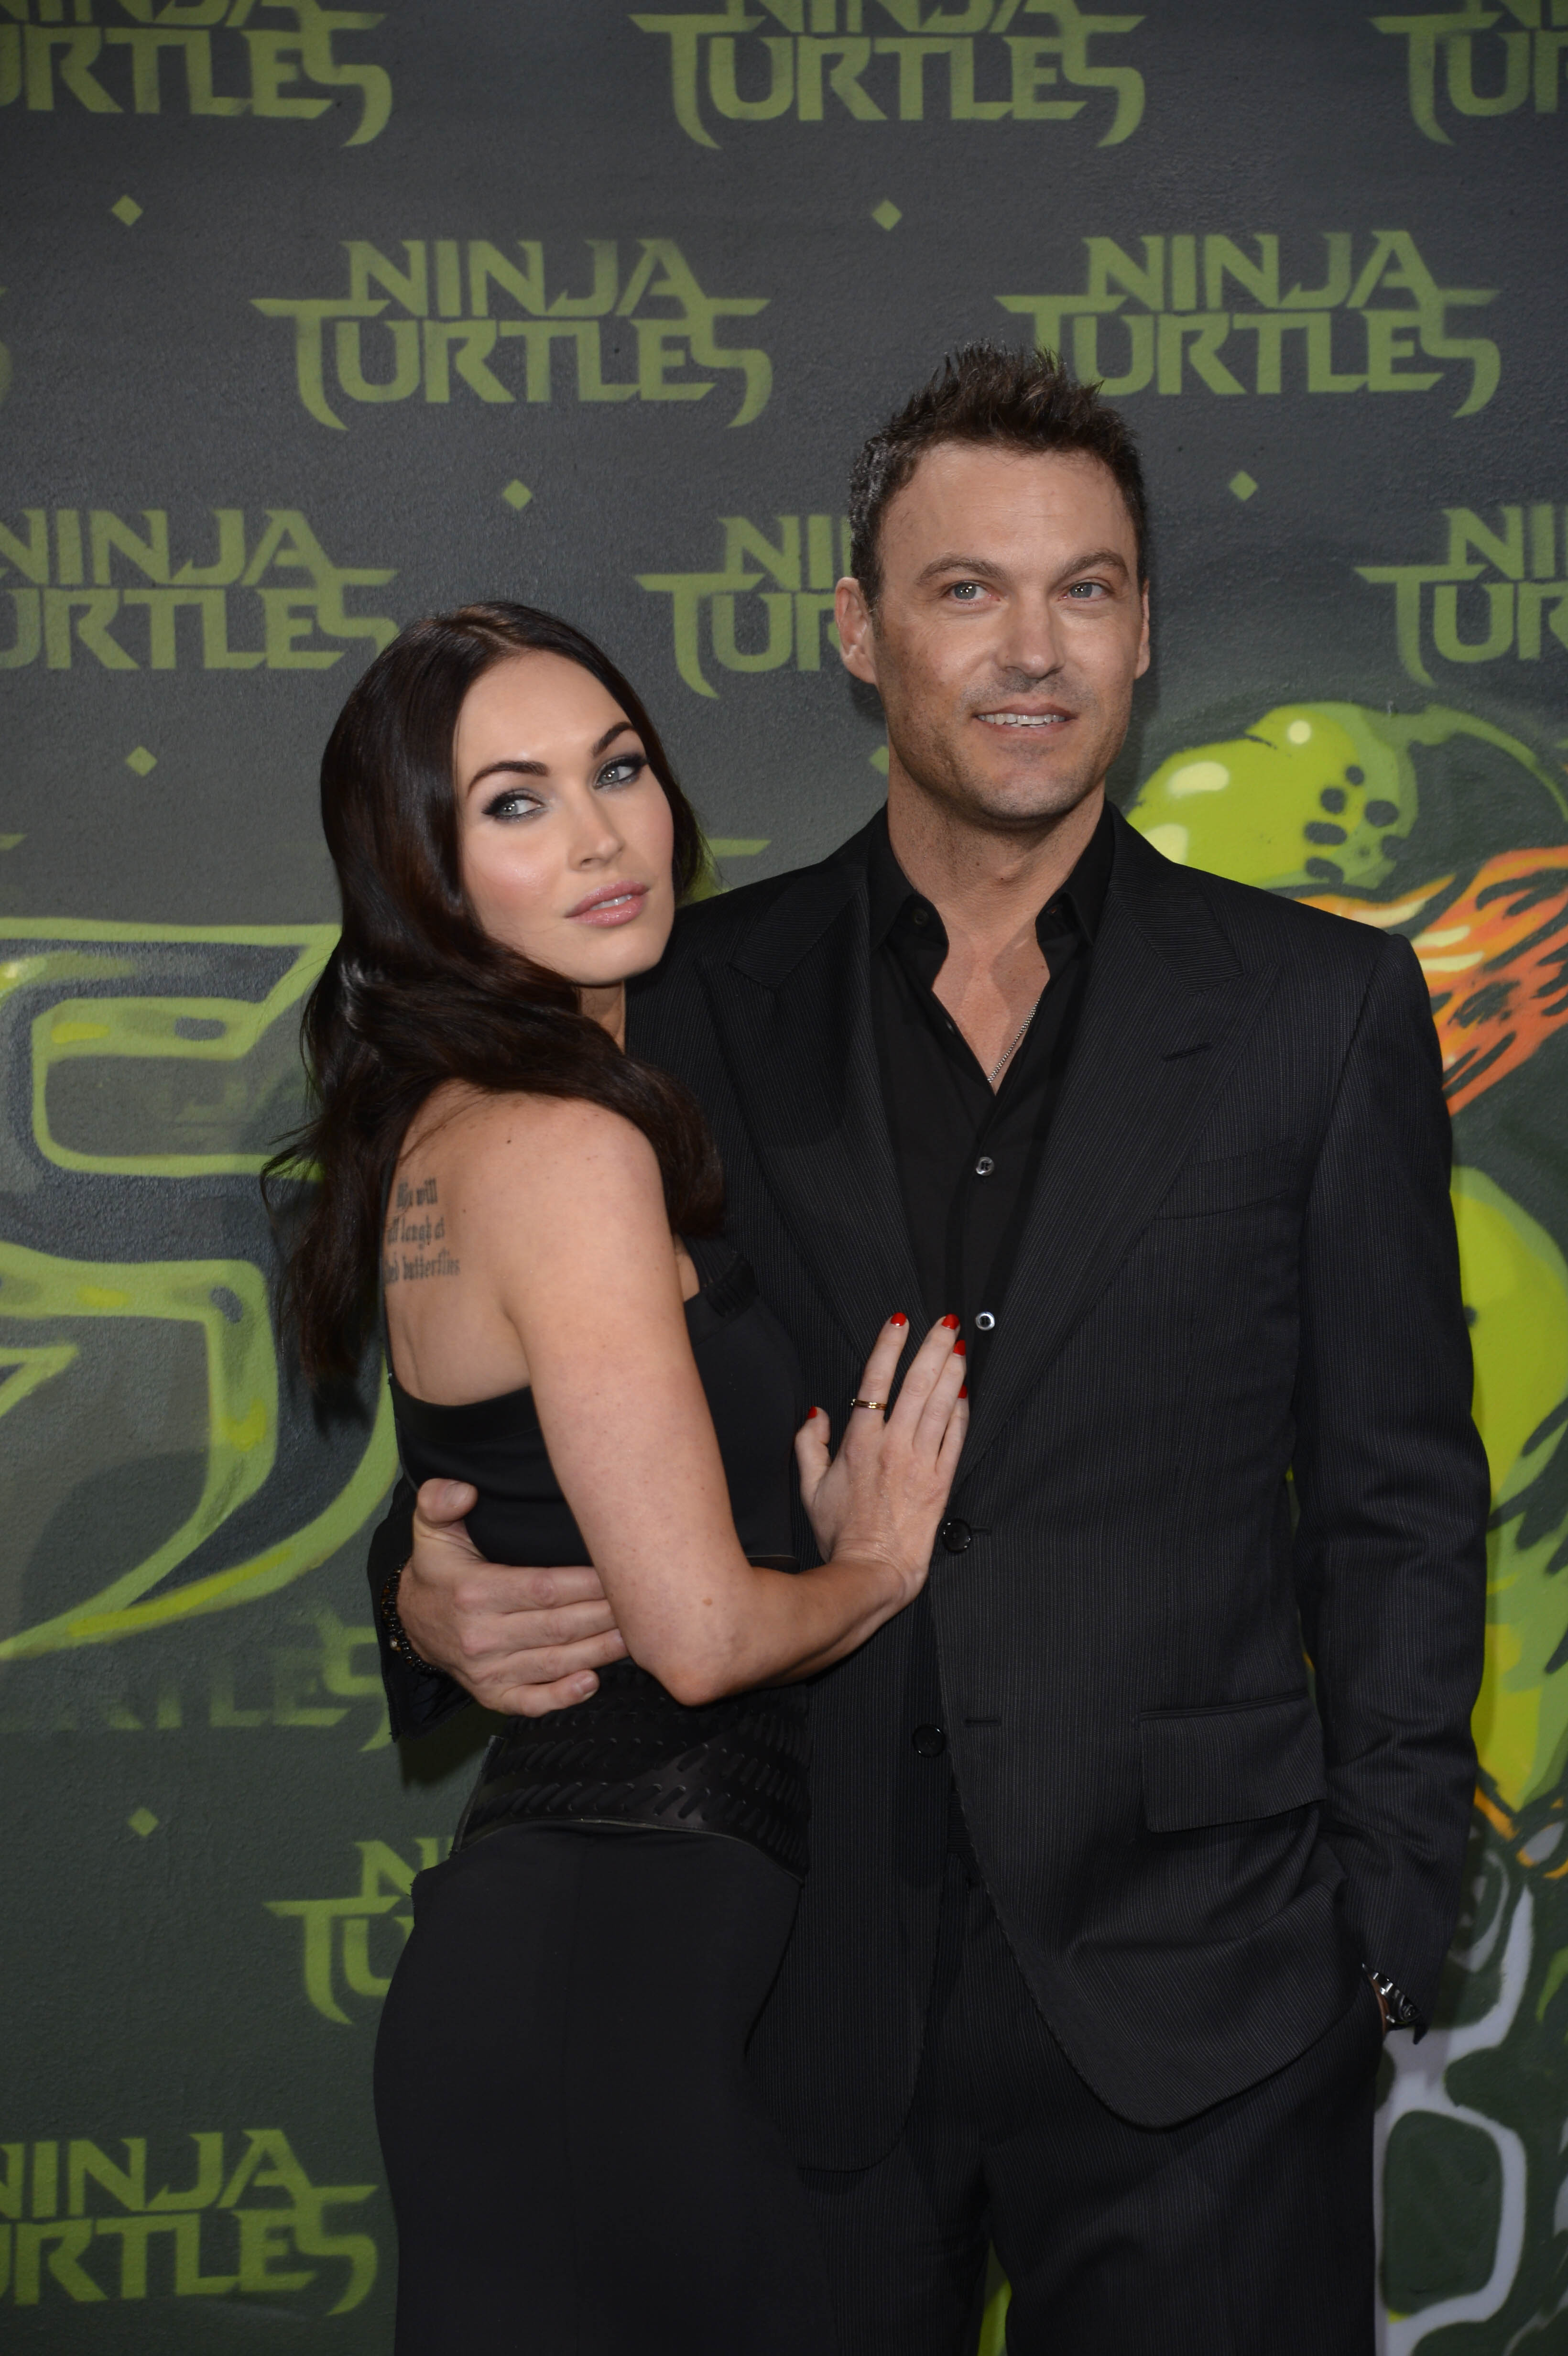 Megan Fox and Brian Austin Green attend the Berlin premiere of the film 'Teenage Mutant Ninja Turtles' / Photo:Getty Images